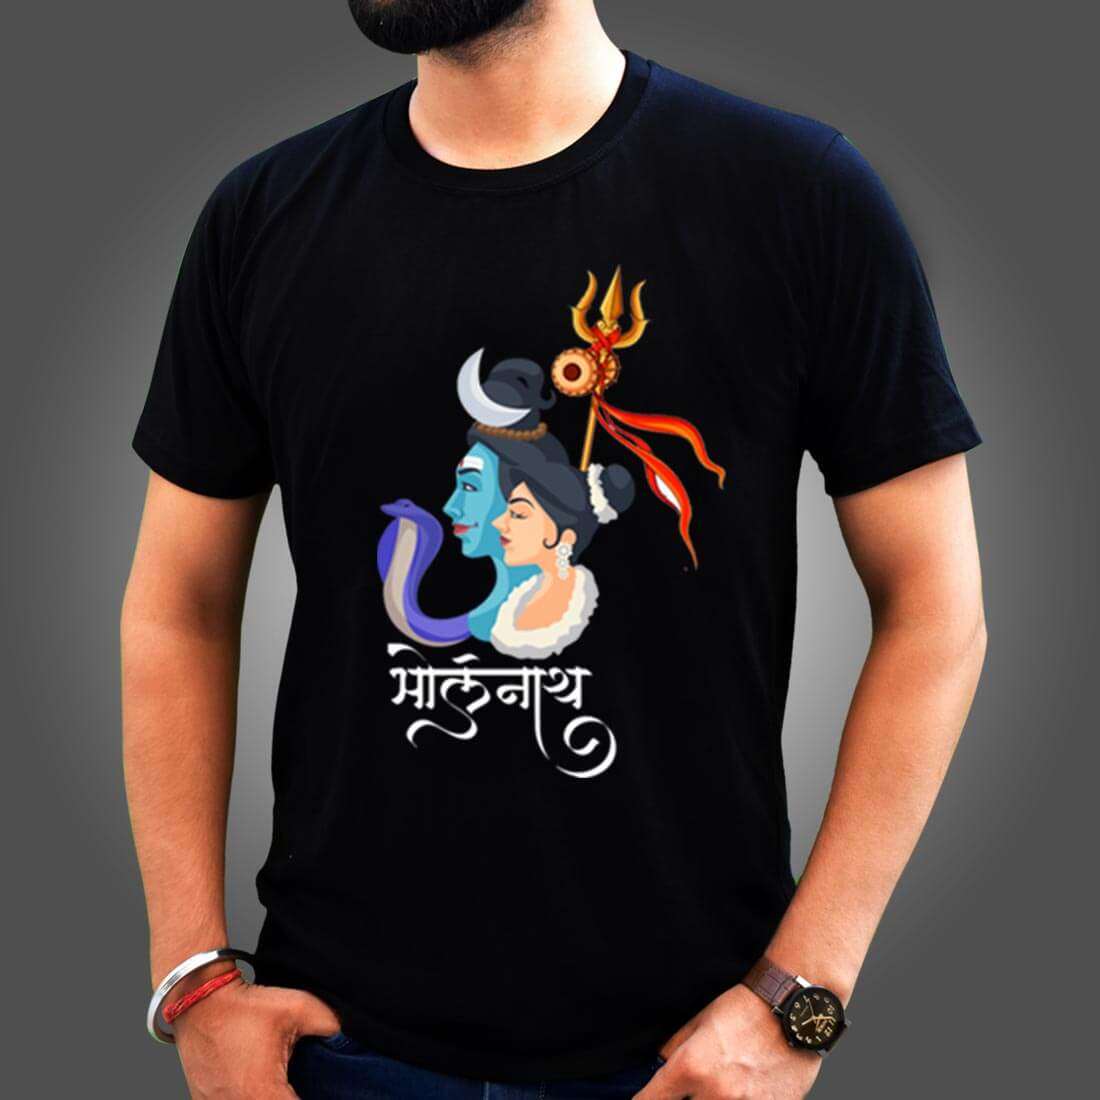 Bholenath with Parvati Images Printed Black Round Neck T Shirt